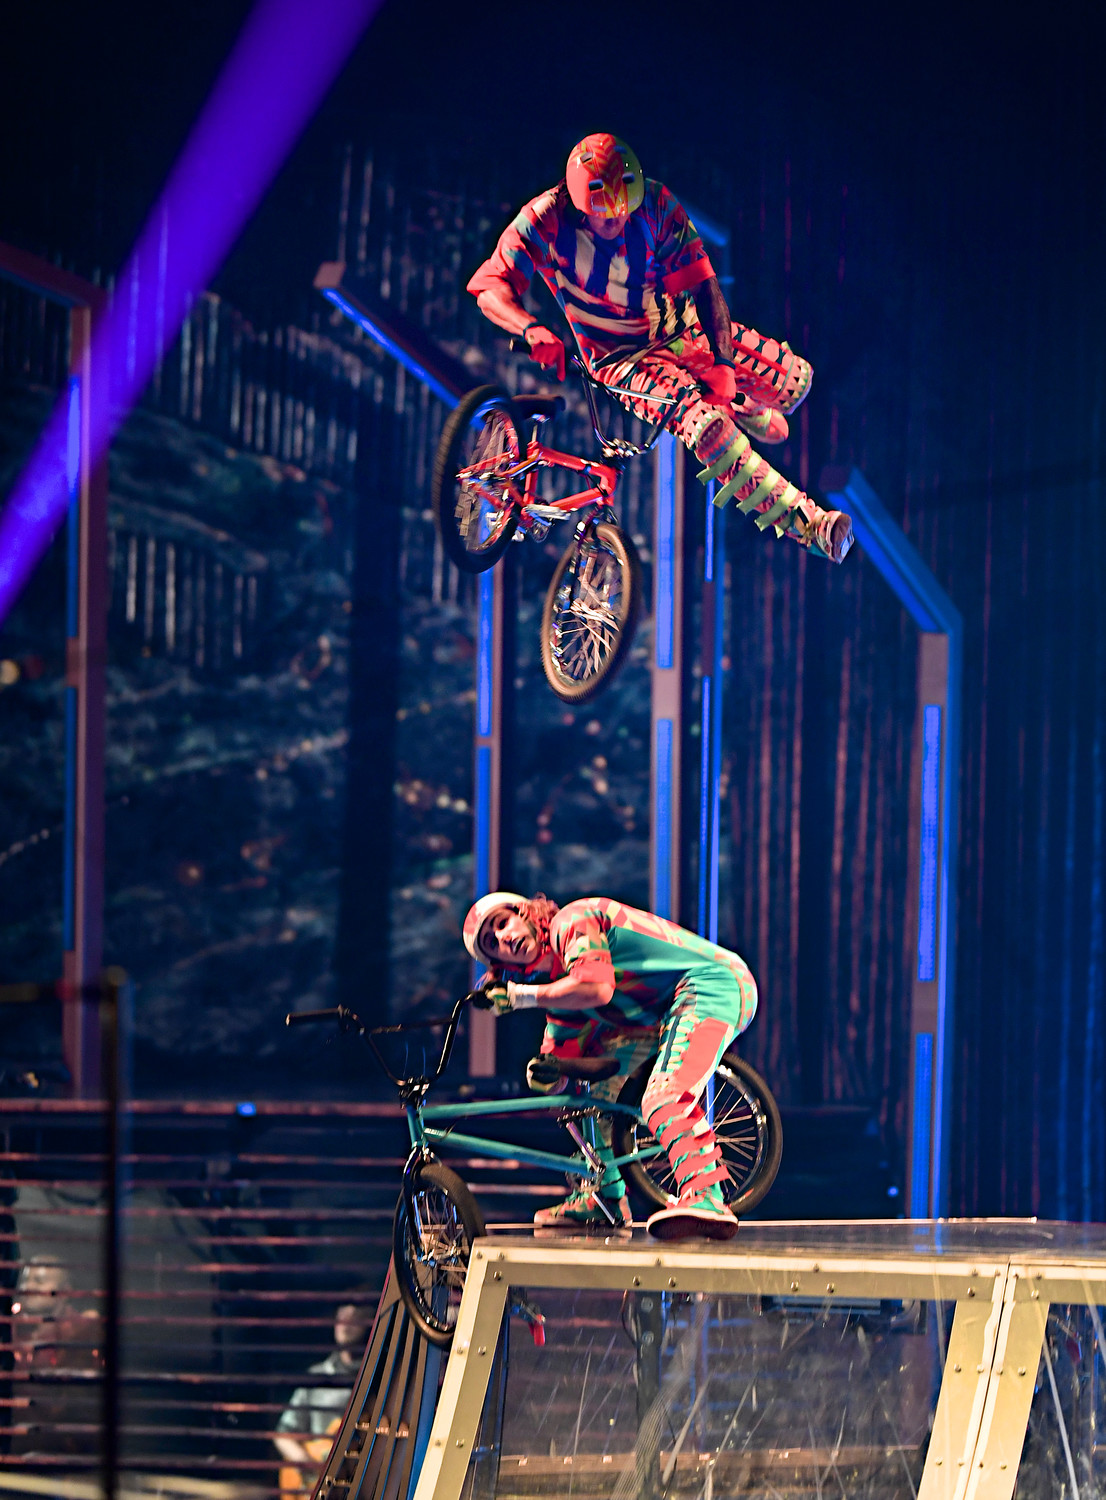 BMX riders command the stage with fast-paced nonstop acrobatics on wheels.